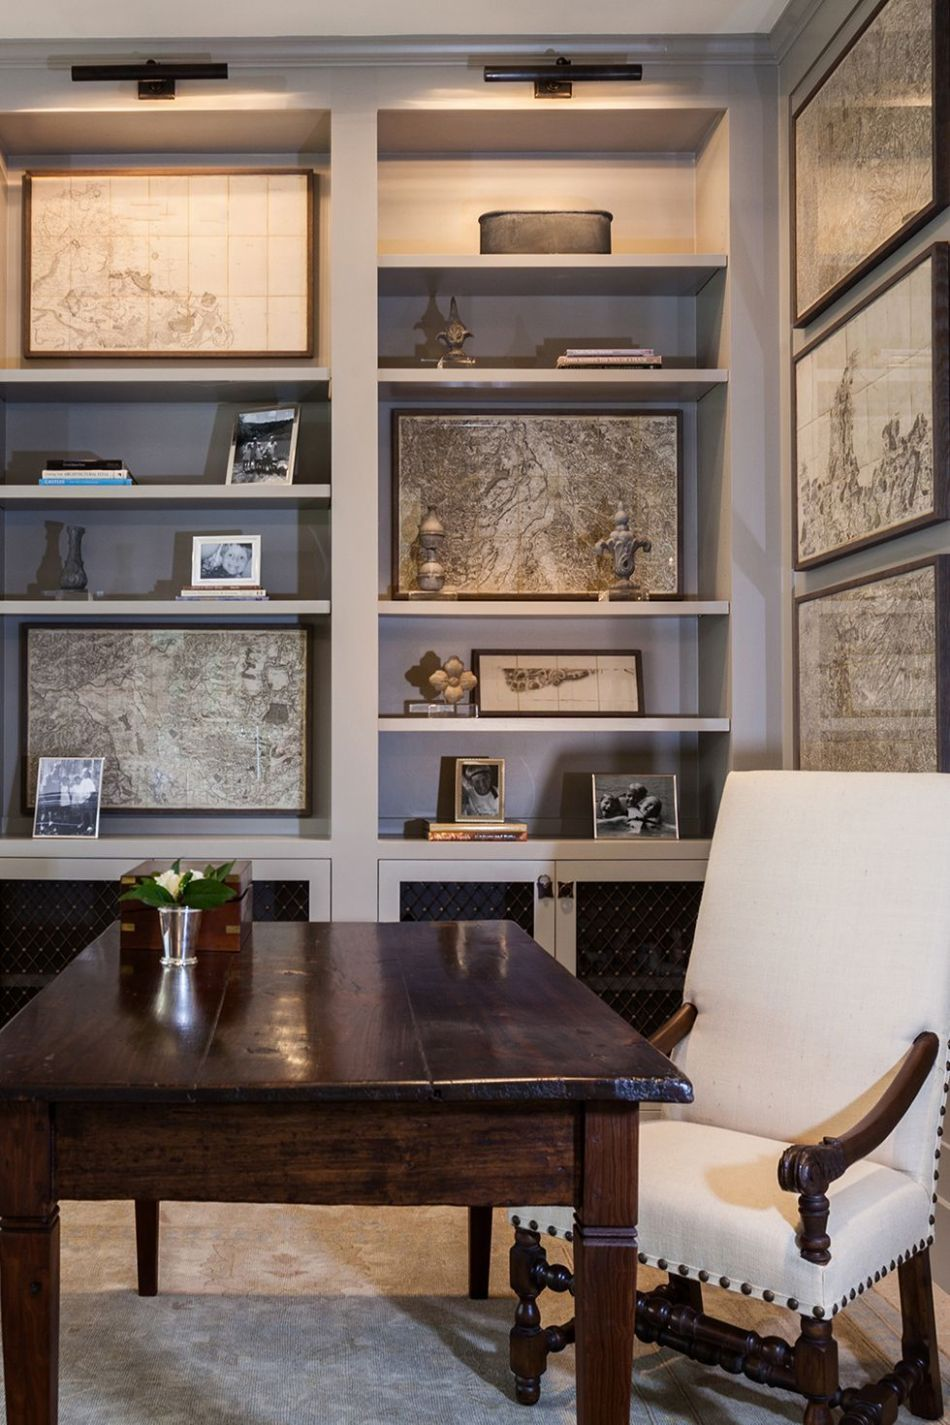 10 Rooms with Stylish Built-In Bookshelves (With images) | Home ..